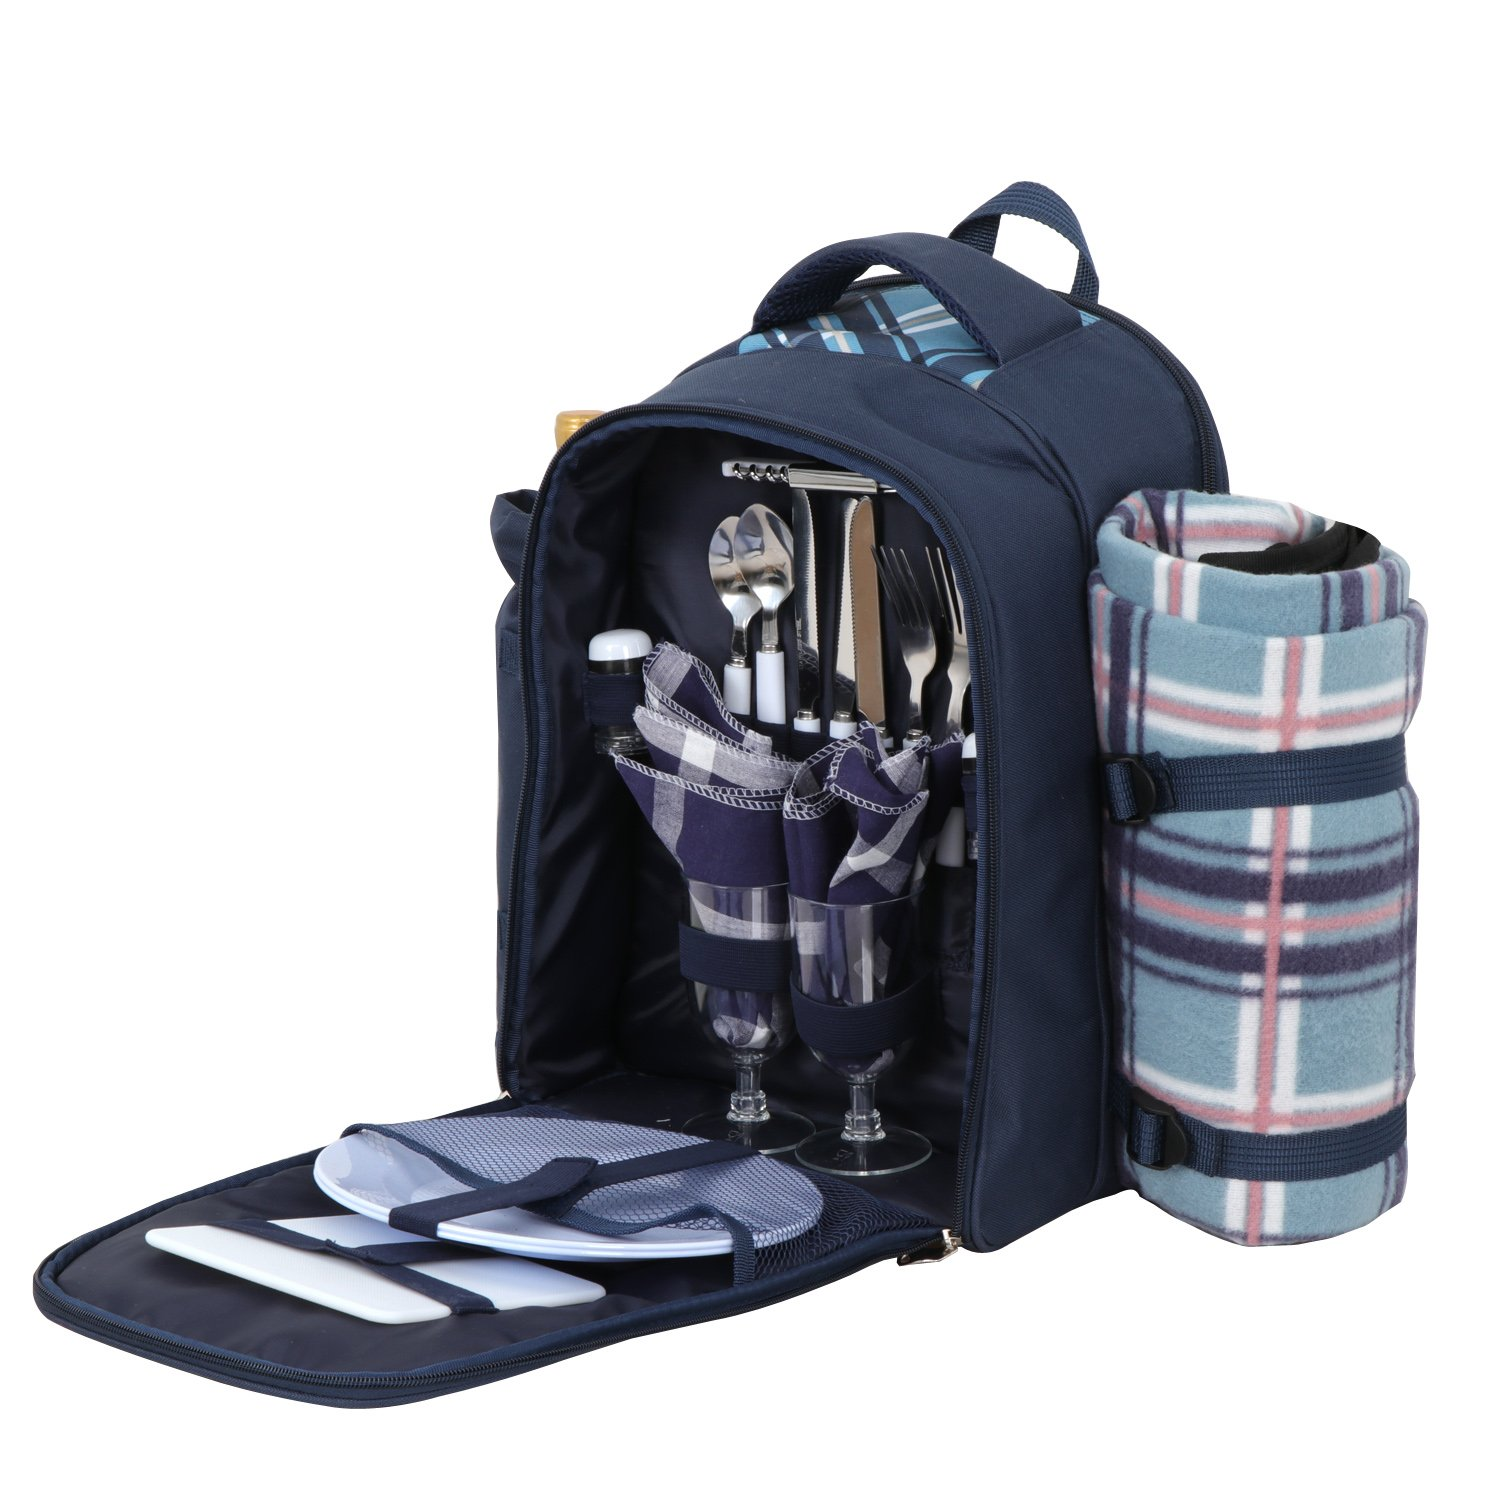 ZENYPocnic Backpack for 2 Persons w/Full Set Tablewares,Detachable Bottle Wine Holder,Fleece Blanket for Outdoor Camping Family Picnic